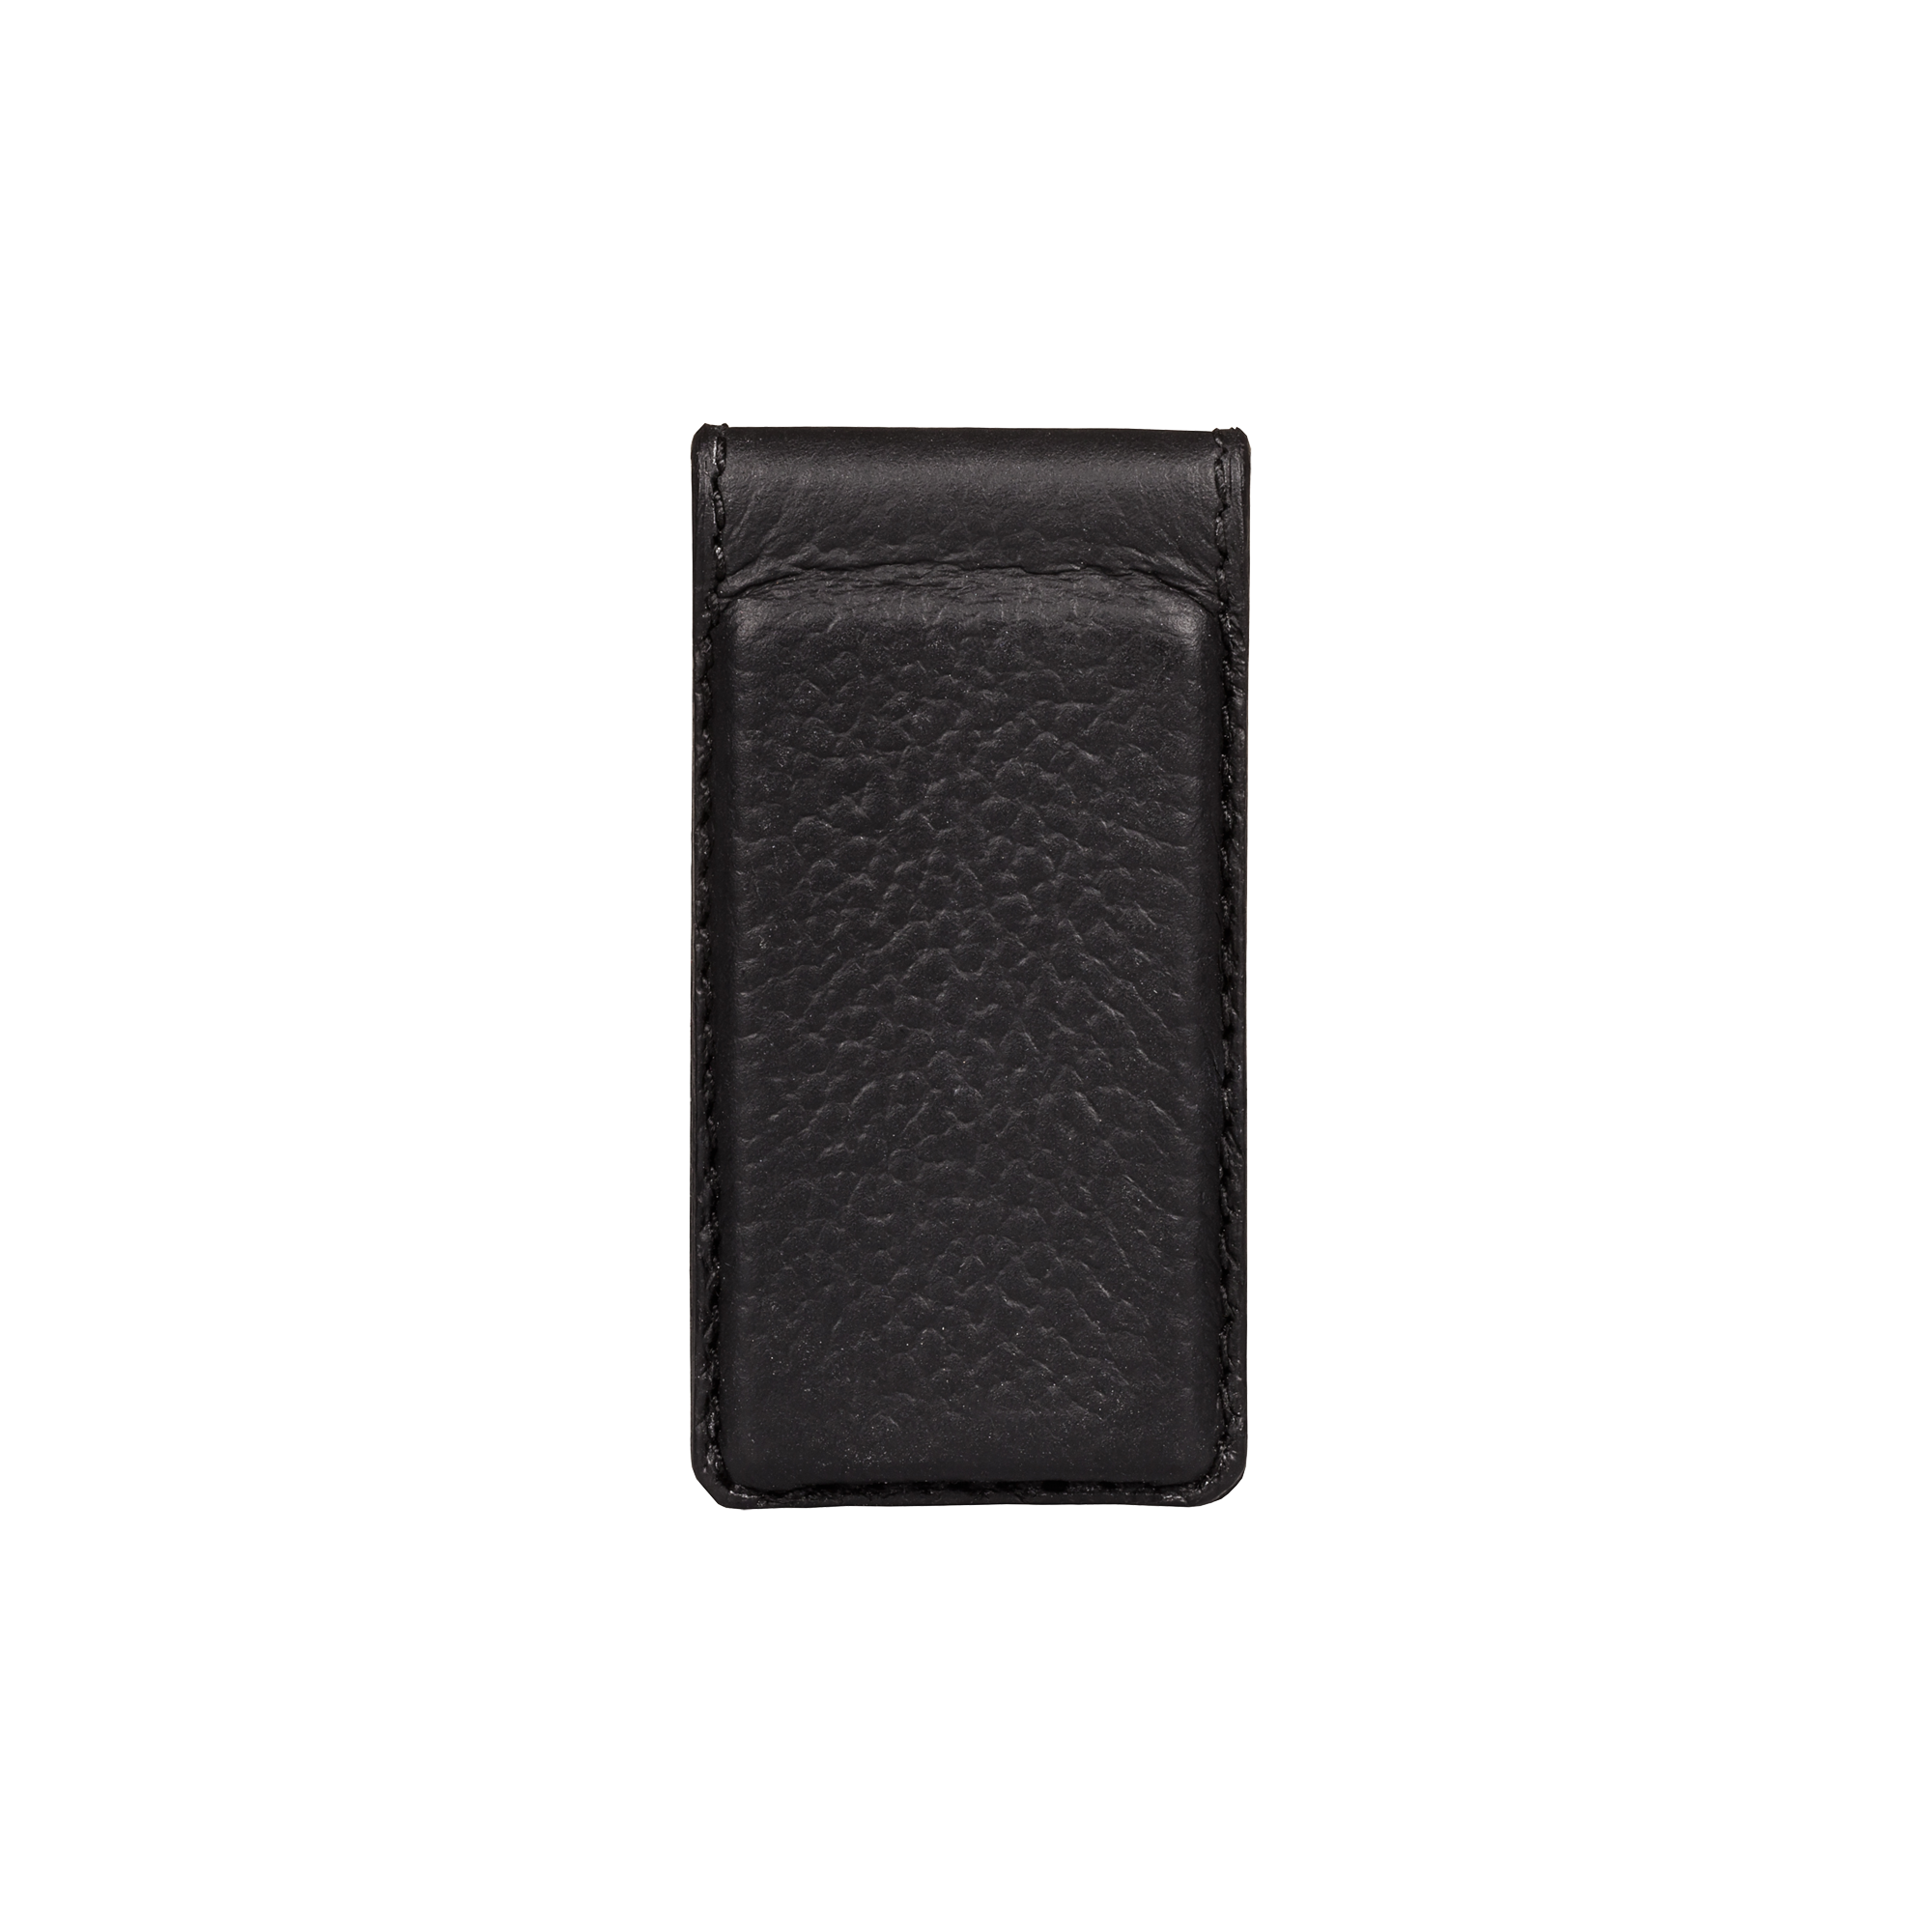 Money Clip, Grain Leather Black/Red, MAISON JMK-VONMEL Luxe Gifts